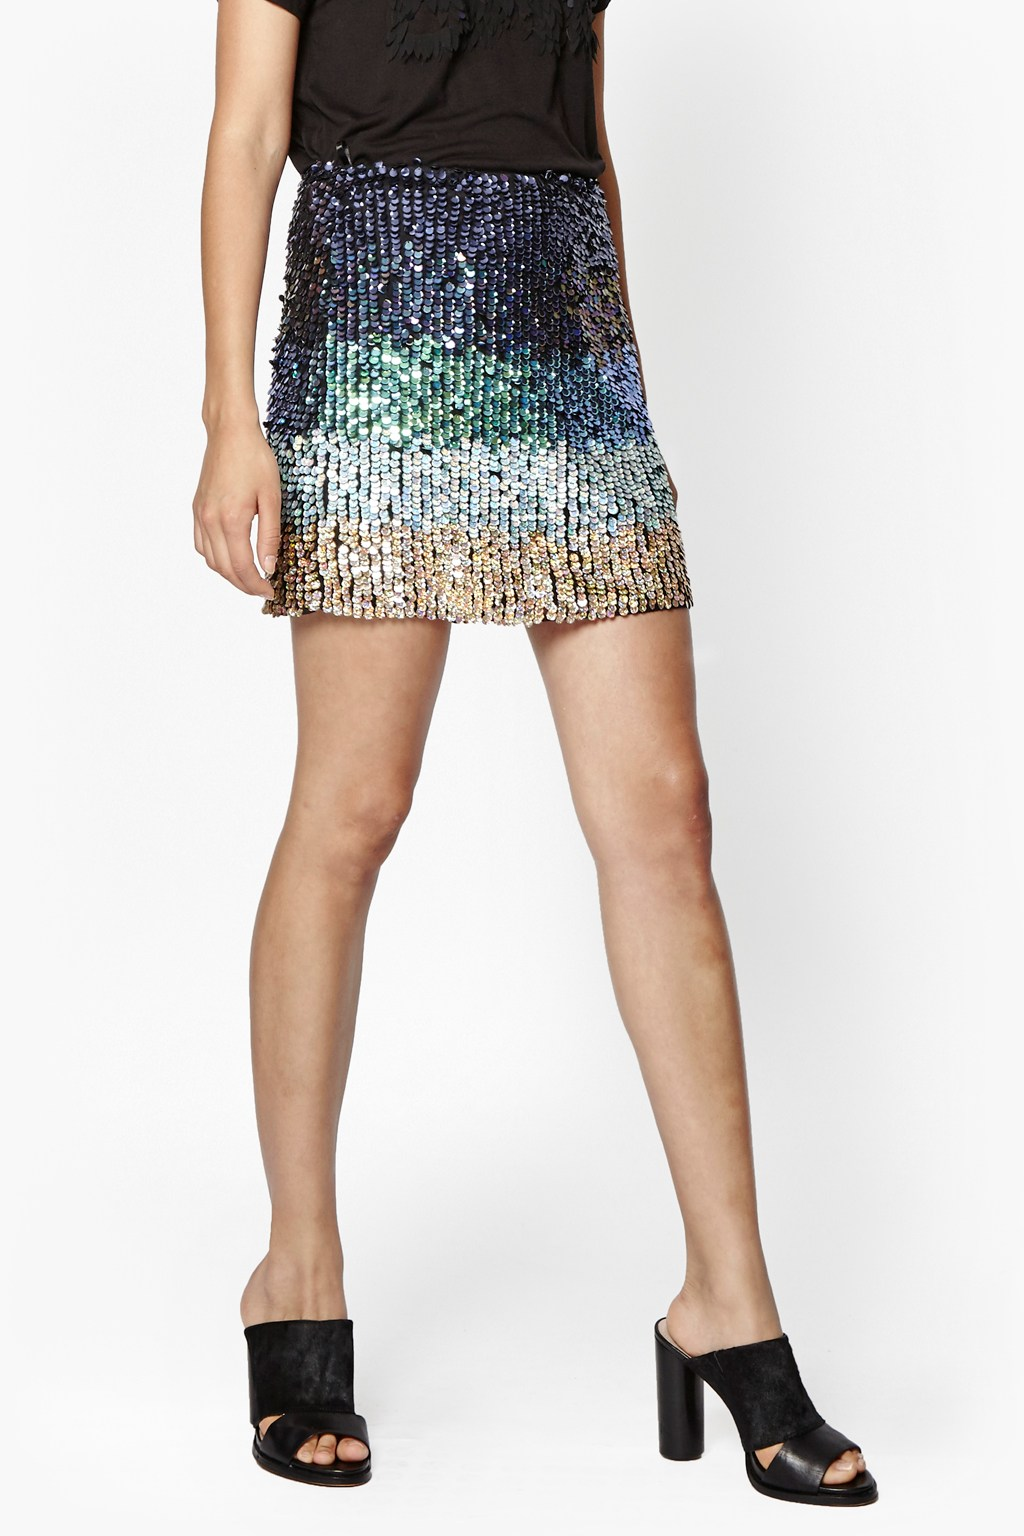 Cosmic Beam Sequin Skirt